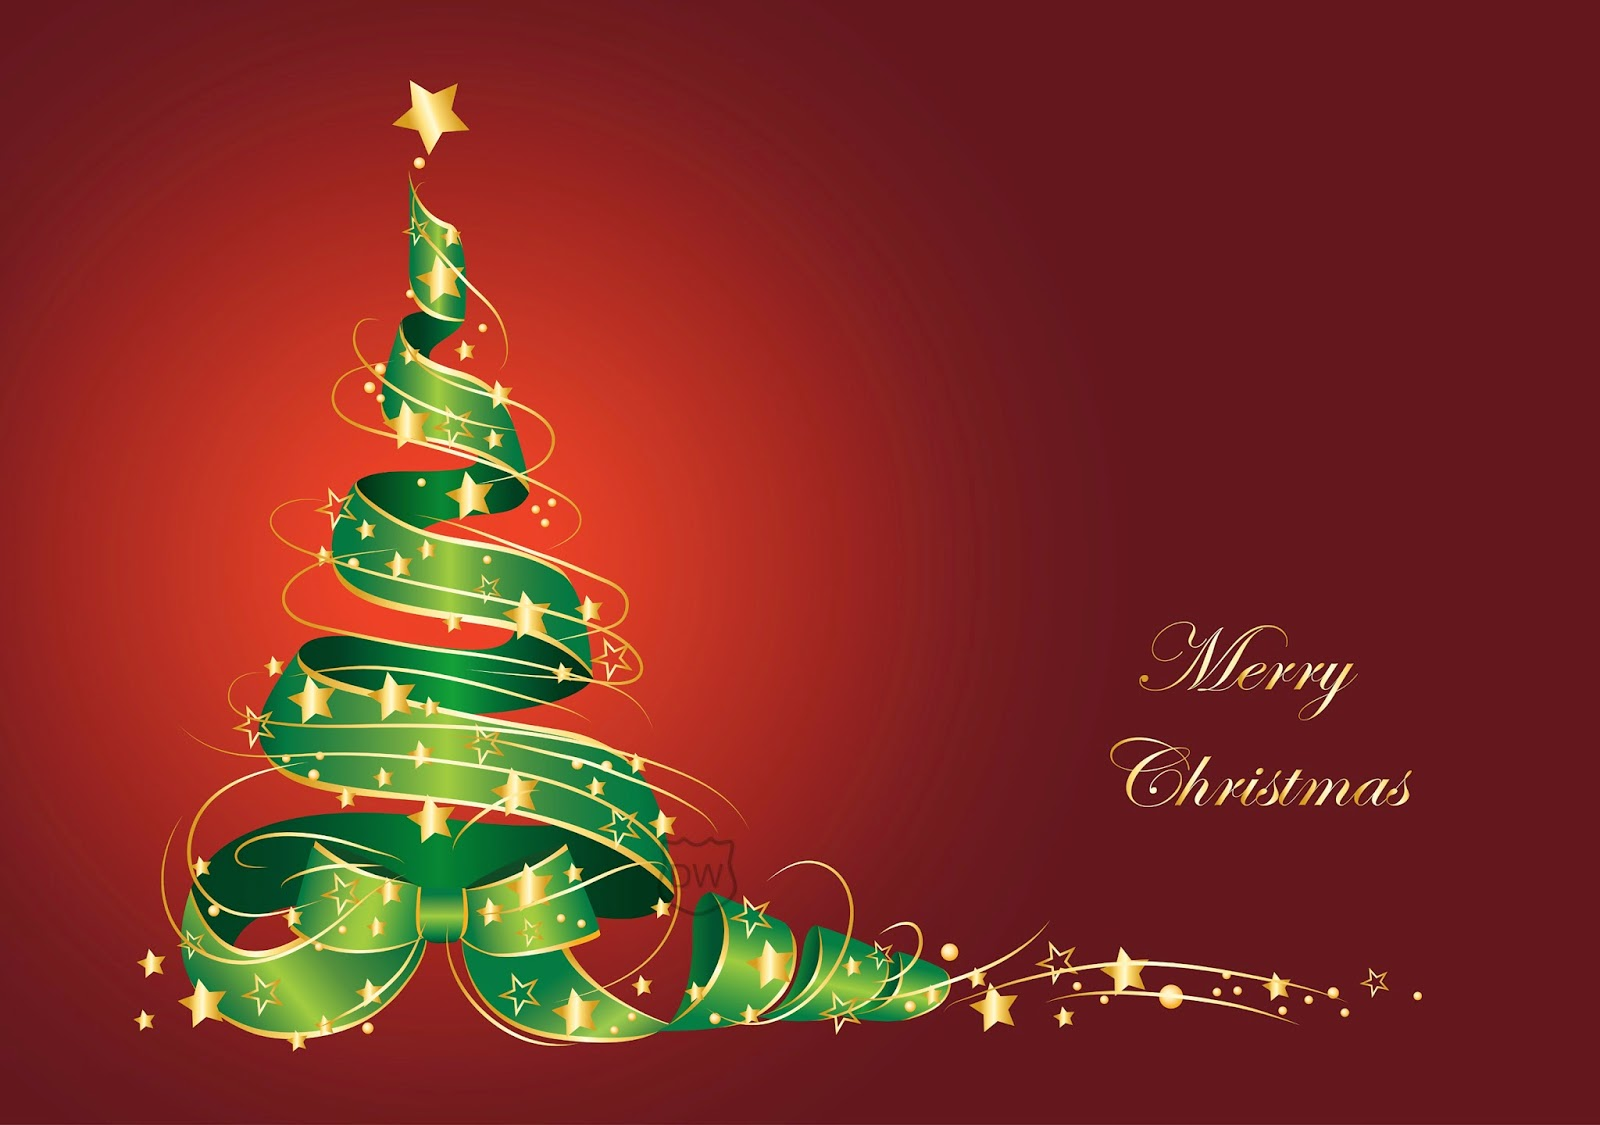 happy christmas and merry christmas hd wallpapers and information